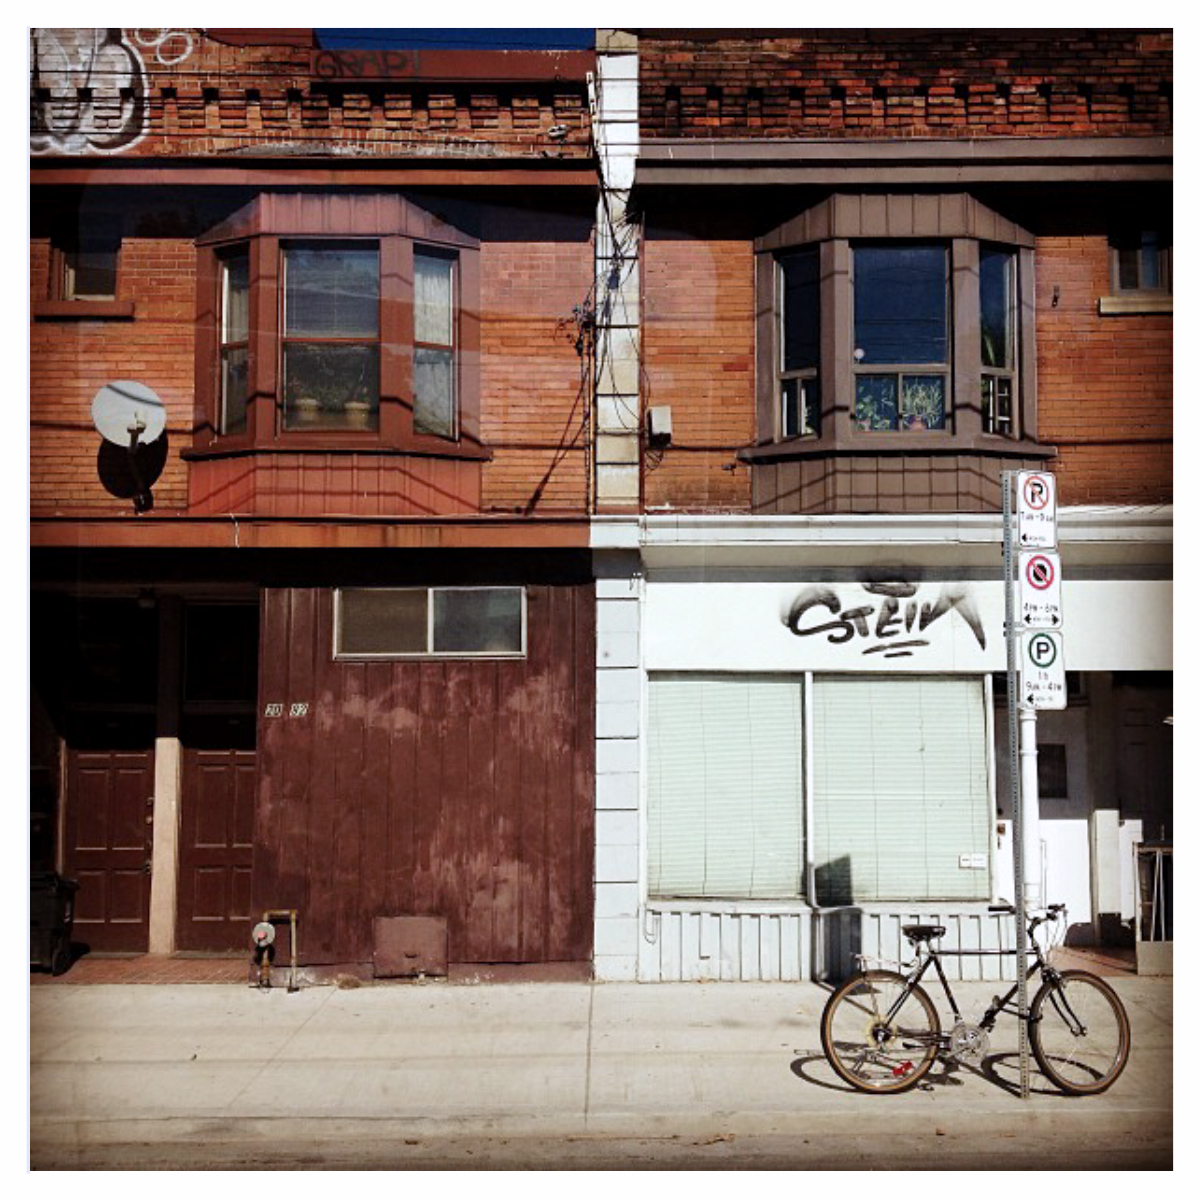 Dundas Street West - October 12, 2012 - Before 12:30PM